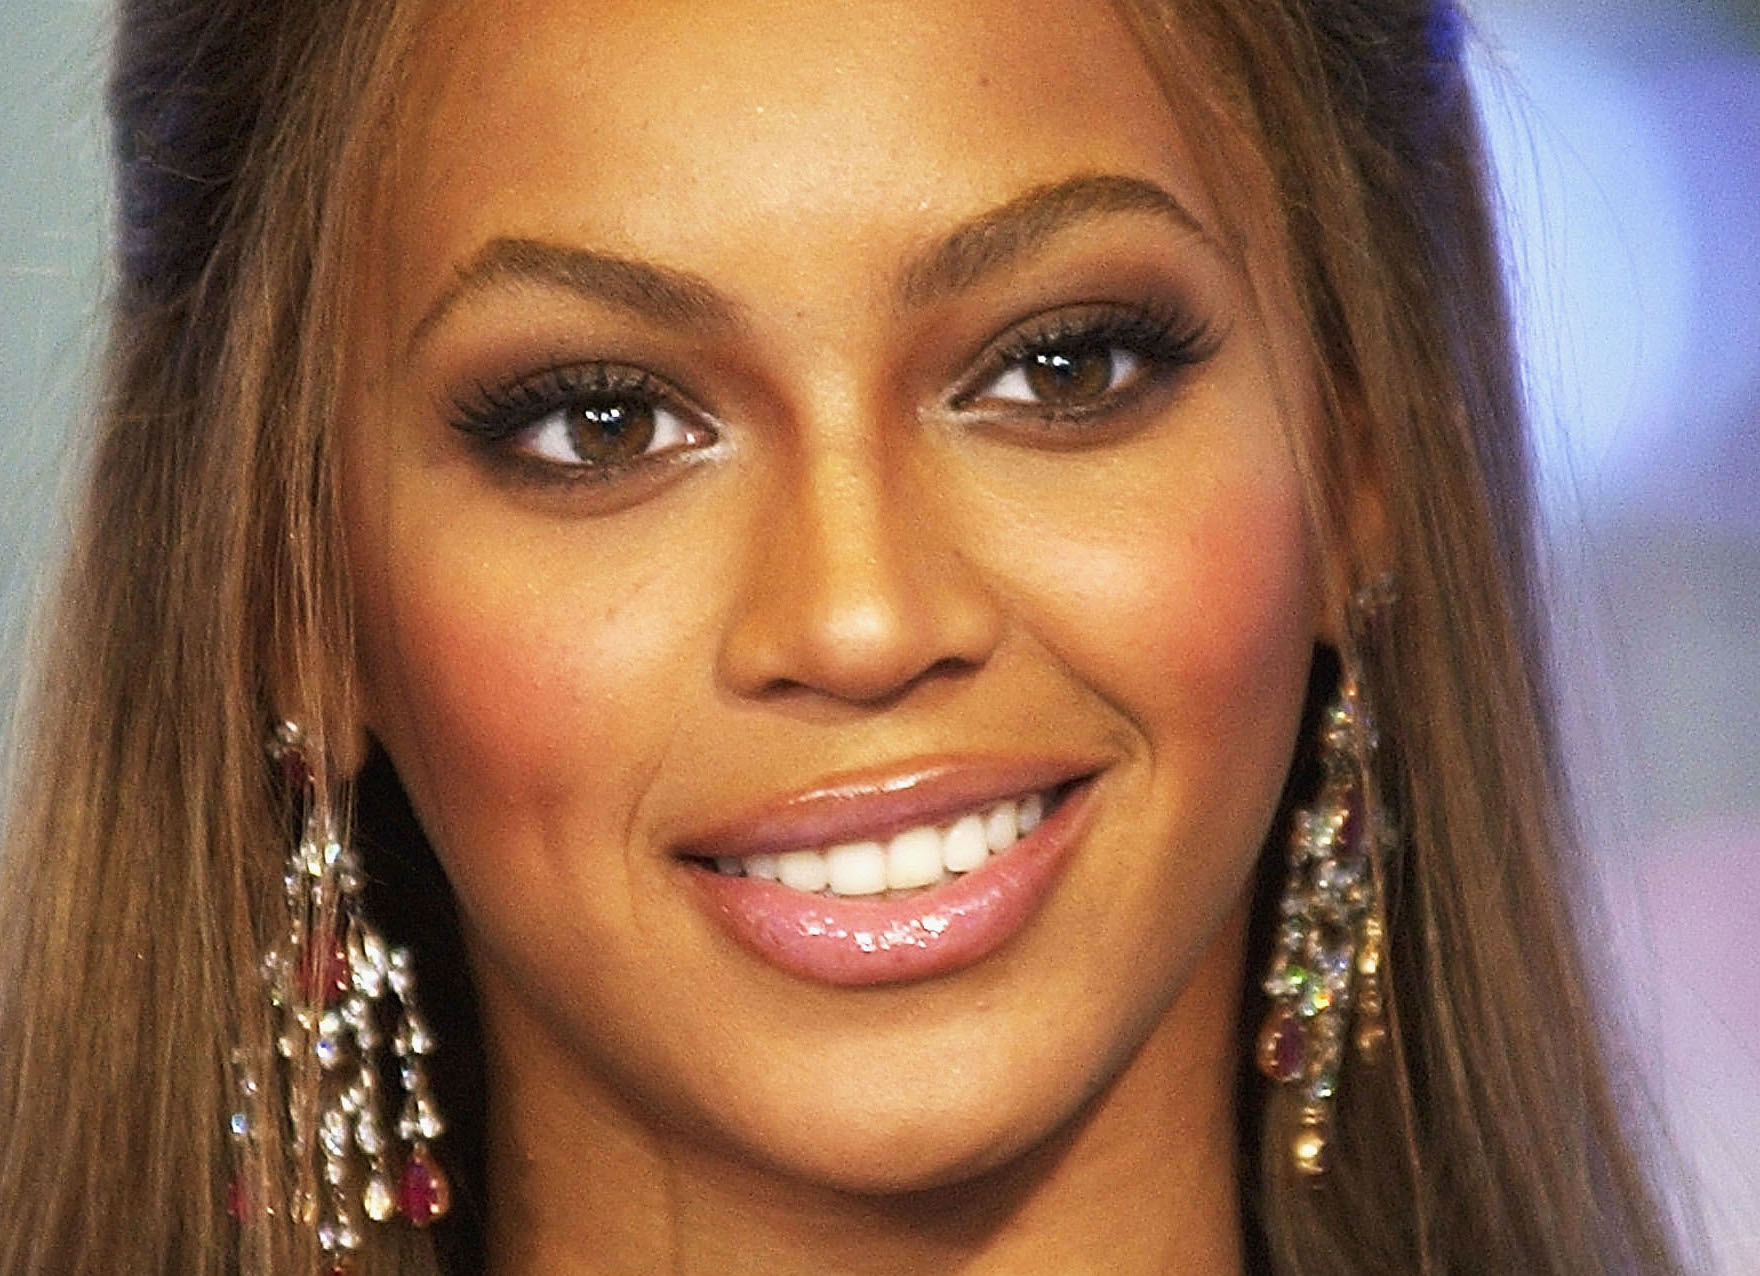 Beyonce Eyes Turn Black The Story of th...